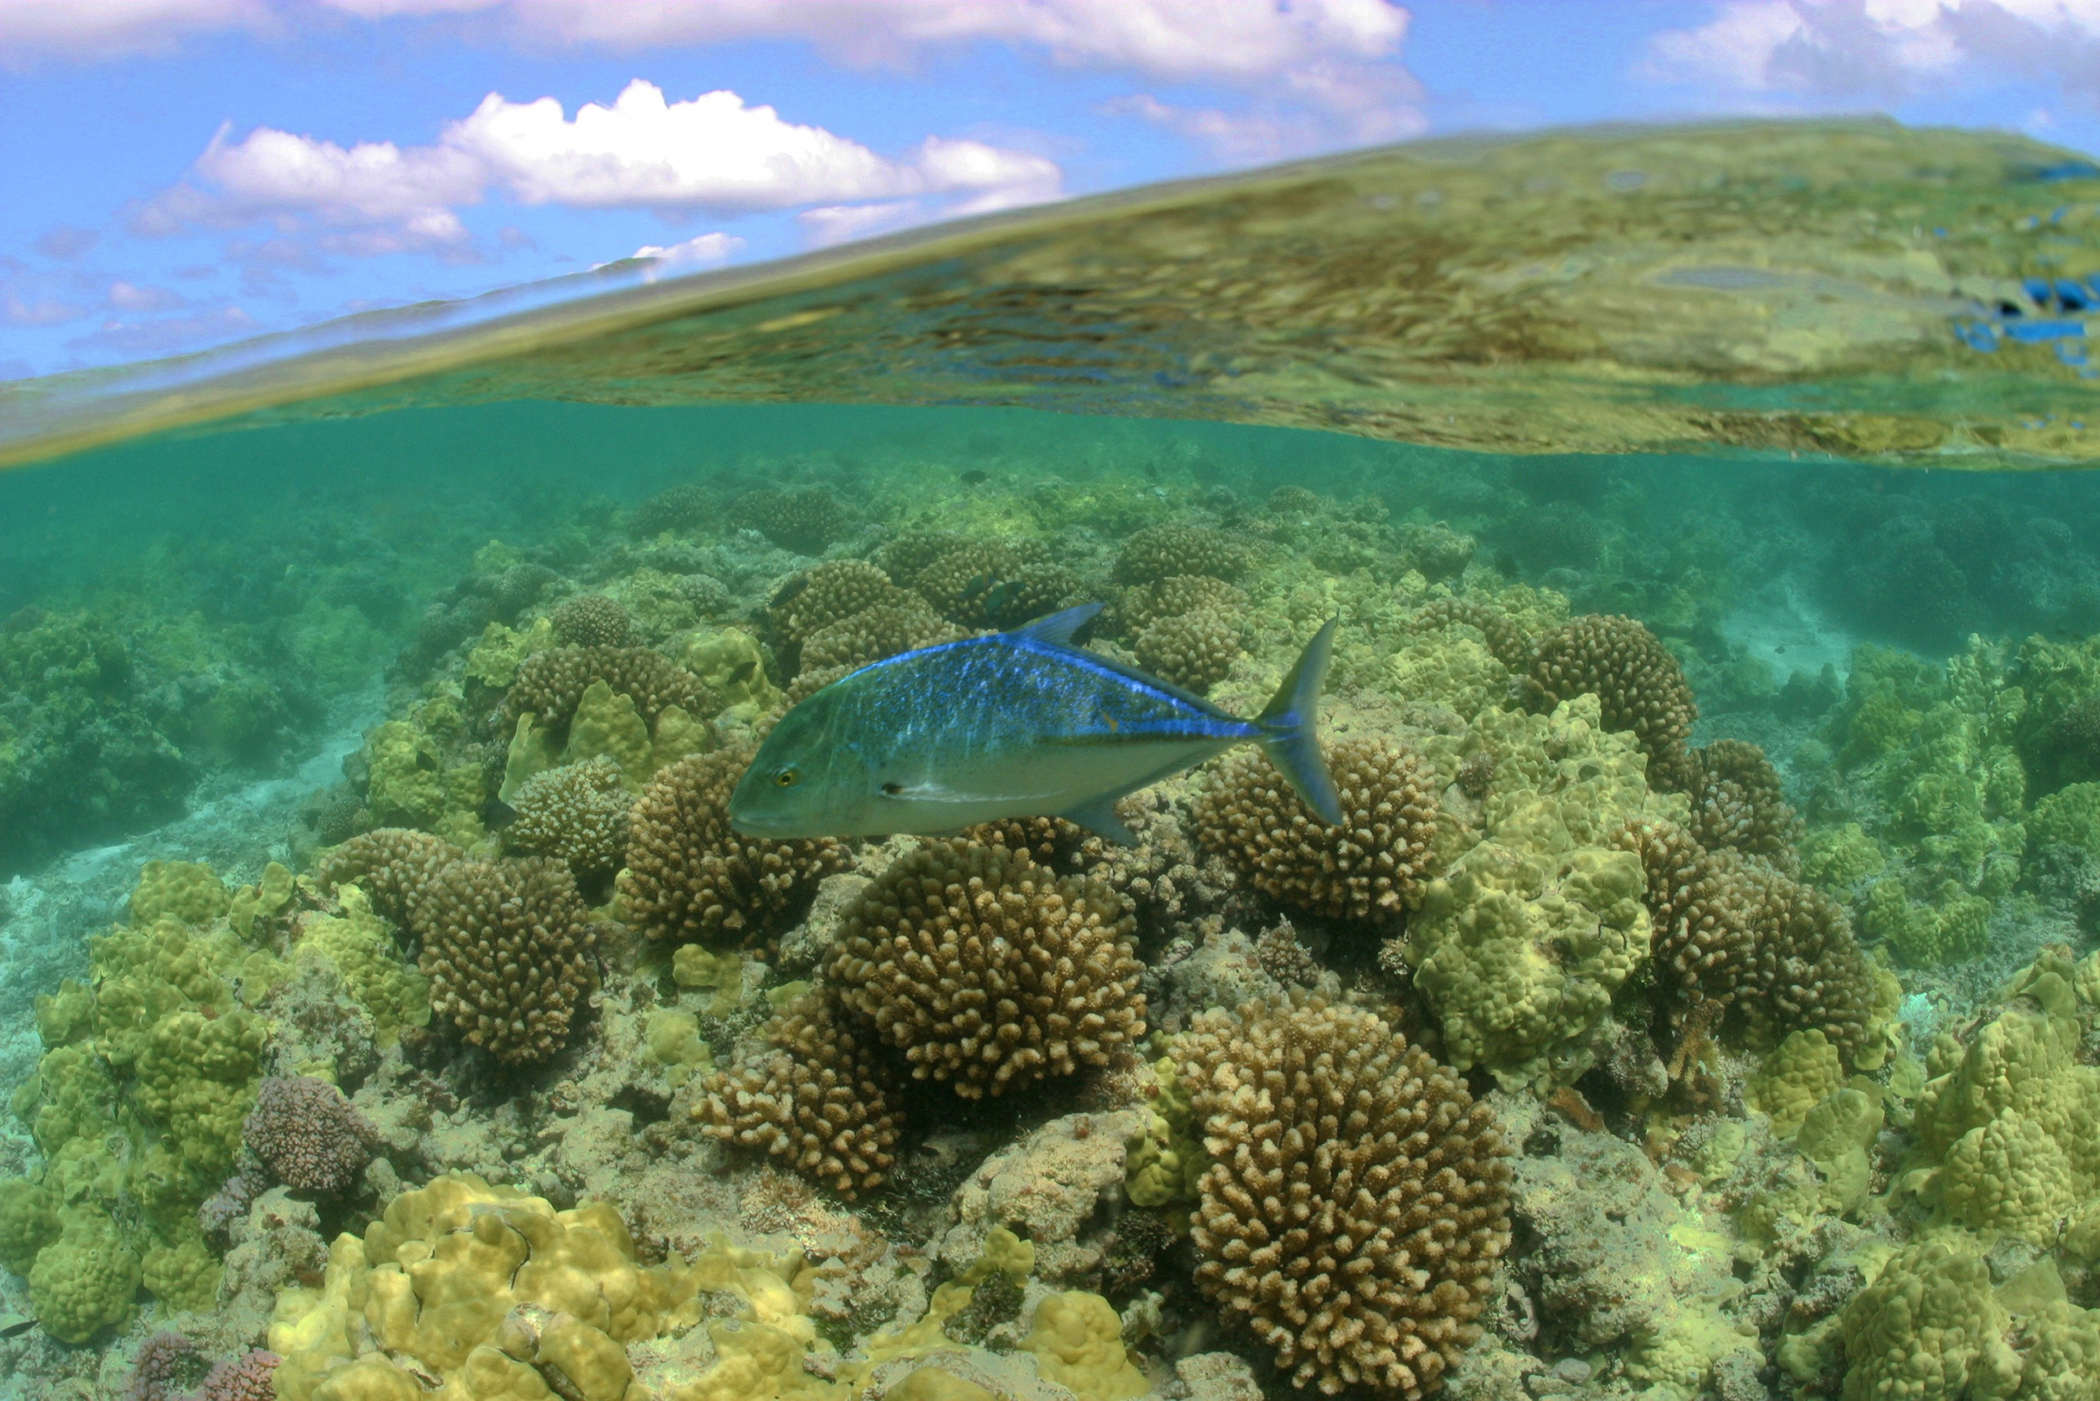 "President Obama quadrupled the size of the Papahānaumokuākea Marine National Monument off the coast of Hawaii, creating the world's largest marine protected area. When he declared National Oceans Month in June, he stated, ""Oceans and their nearby regions are also highly vulnerable to the effects of a changing climate -- a once-distant threat that is now very present and is affecting ecosystems and shoreline communities on every coast. Rising sea levels, coastal storms, and a growing risk of erosion and flooding are looming realities faced by seaside towns.""(photo by James Watt)."